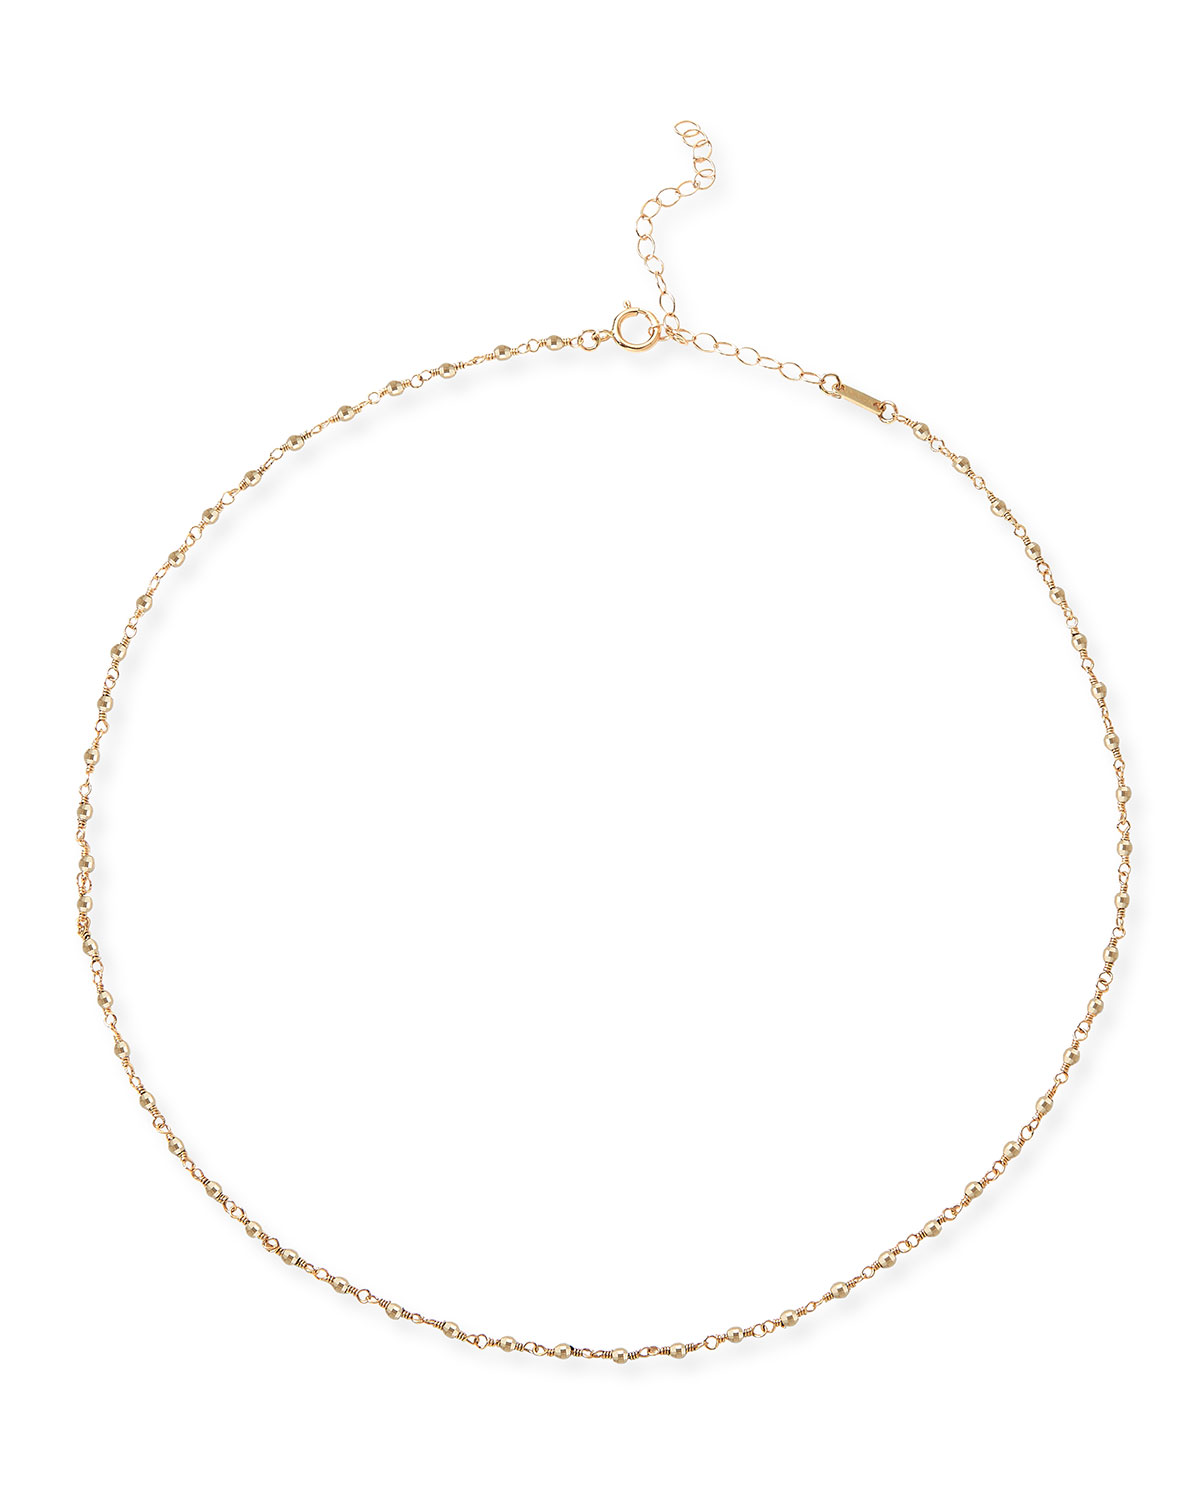 Mizuki Accessories 14K GOLD WRAPPED BEAD CHOKER NECKLACE